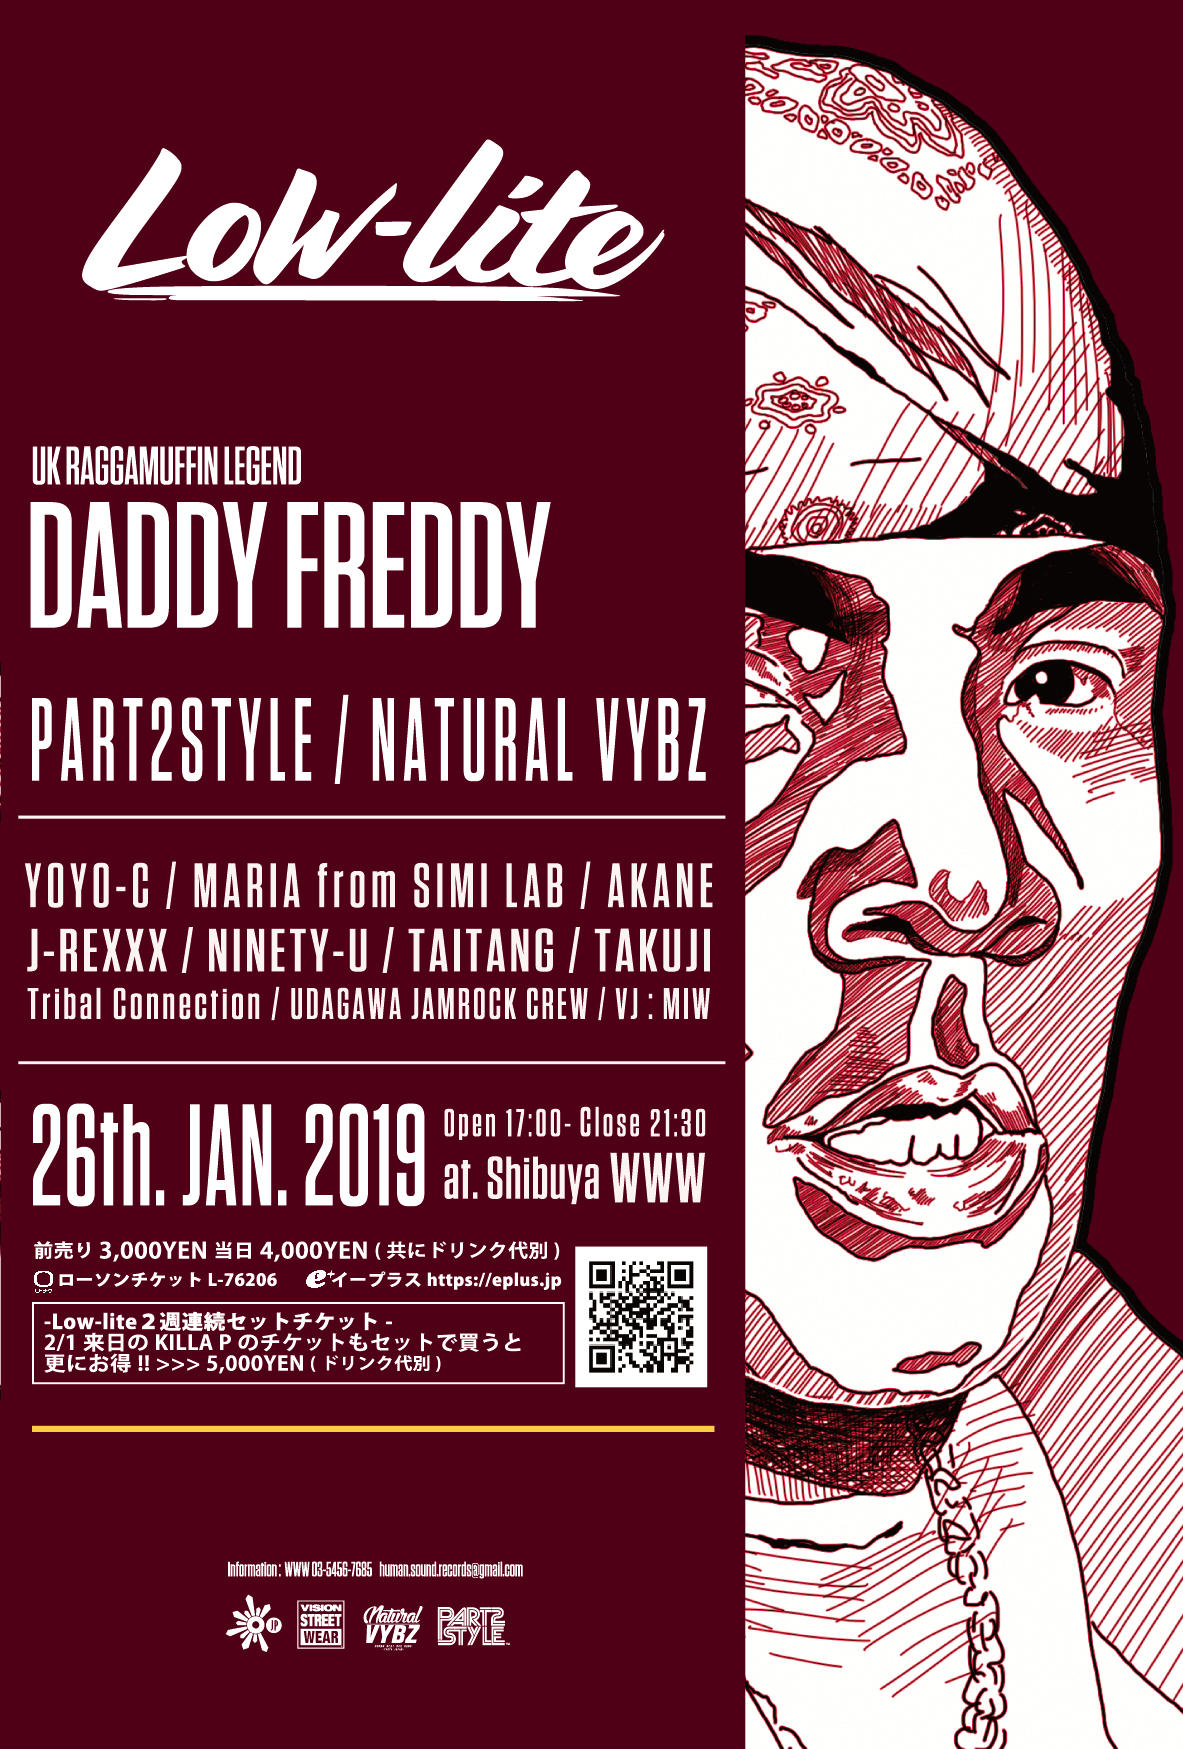 Daddy Freddy / PART2STYLE / NATURAL VYBZ/ YOCO-C / J-REXXX / AKANE / MARIA from.SIMI LAB / NINETY-U / TAKUJI / TAITANG / Tribal Connection / UDAGAWA JAMROCK CREW